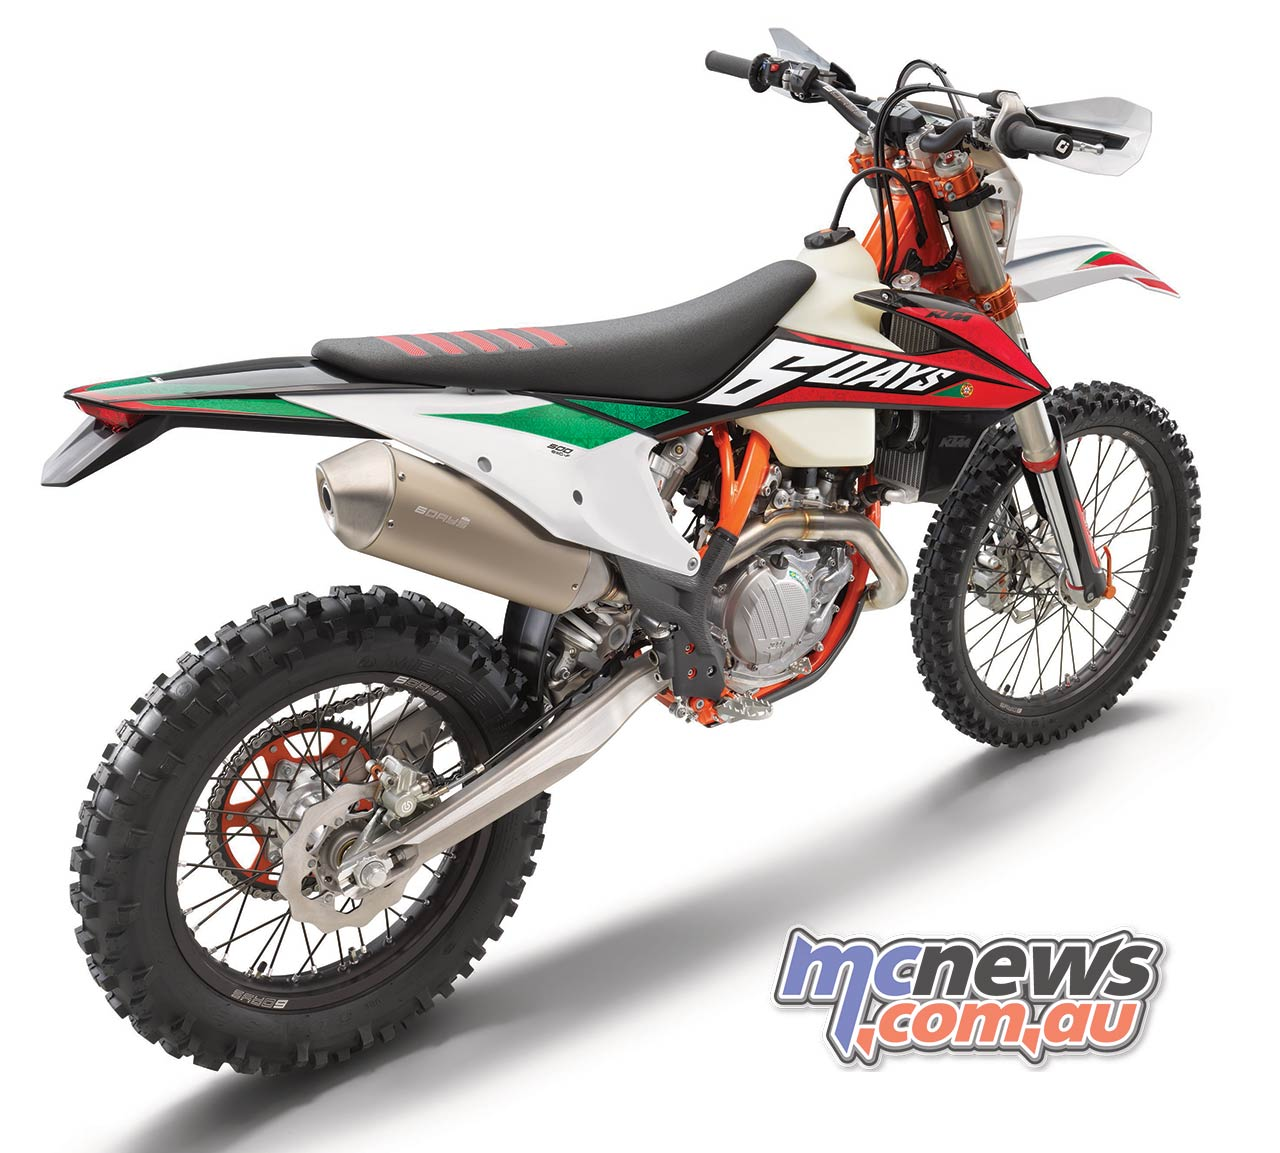 2020 KTM Enduro Range | Full Specs | New ErzbergRodeo 300